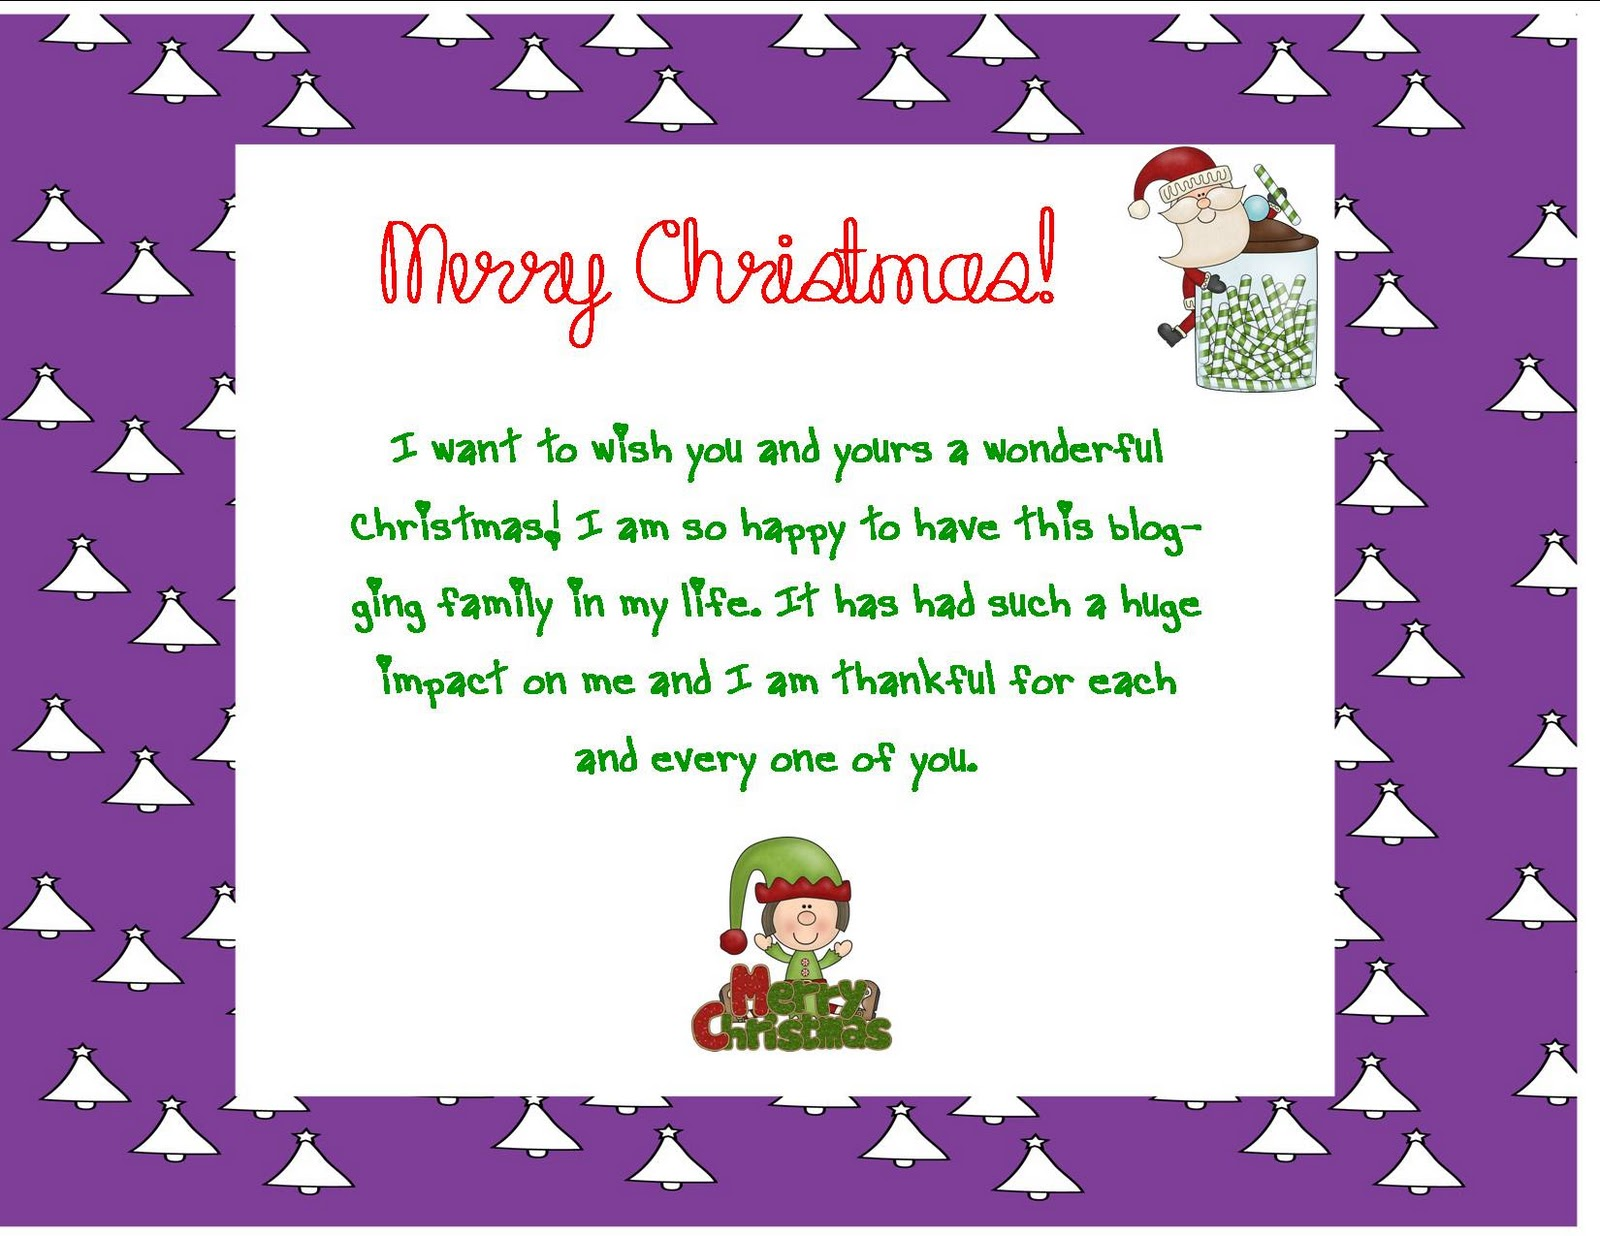 Christmas Card Sayings Quotes Wishes: Merry Christmas To All